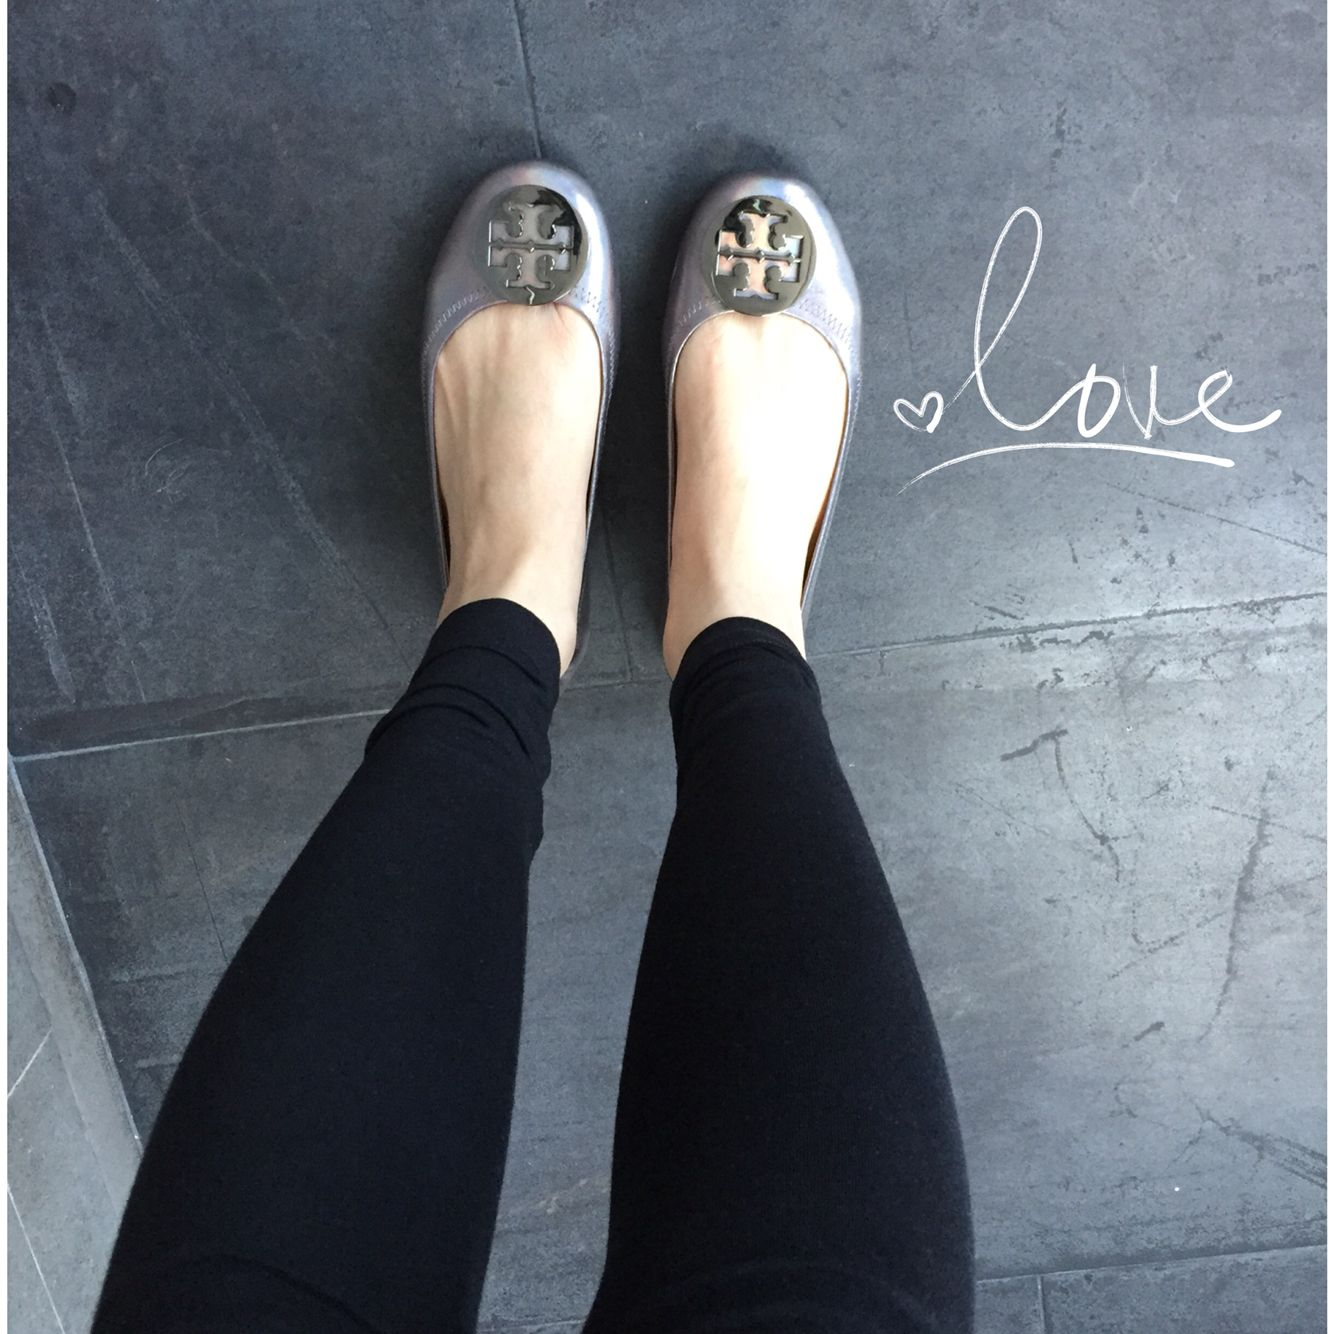 Tory Burch Minnie Flats. So comfy! On the go flats indeed.